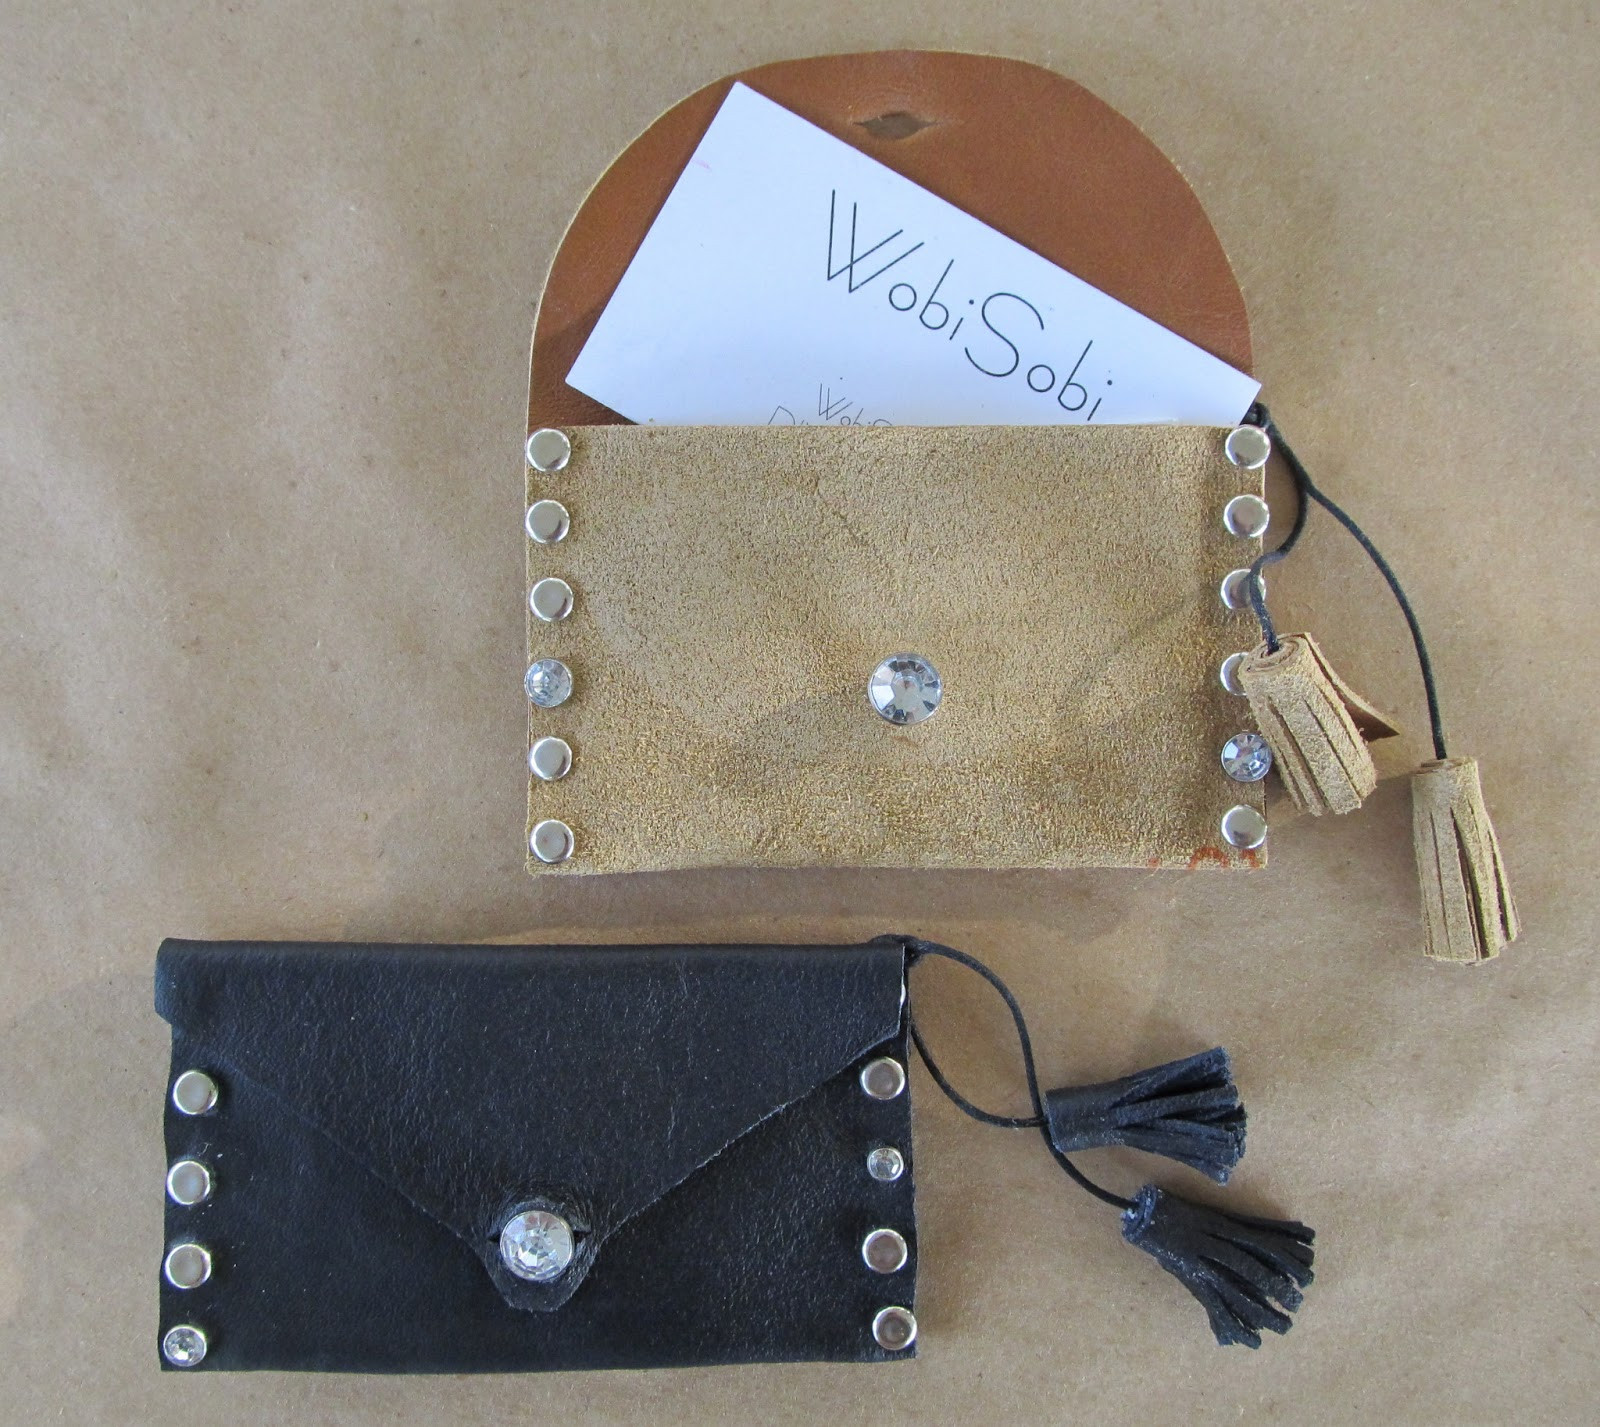 Best ideas about DIY Business Card Holder . Save or Pin WobiSobi Leather Business Card Holder DIY Now.